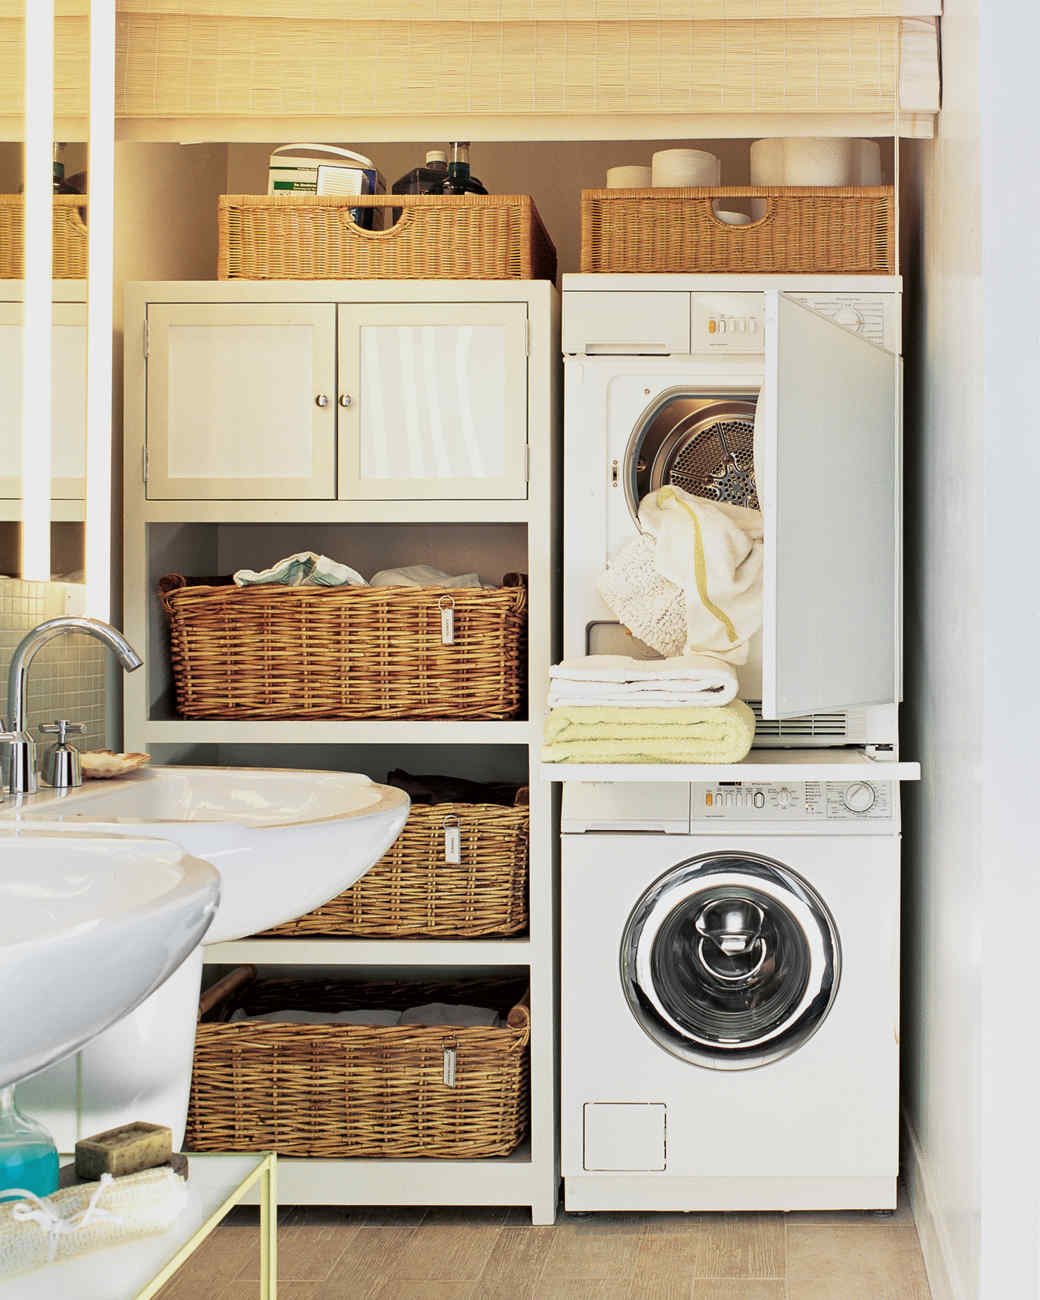 12 essential laundry-room organizing ideas | martha stewart Bathroom Laundry Room Ideas